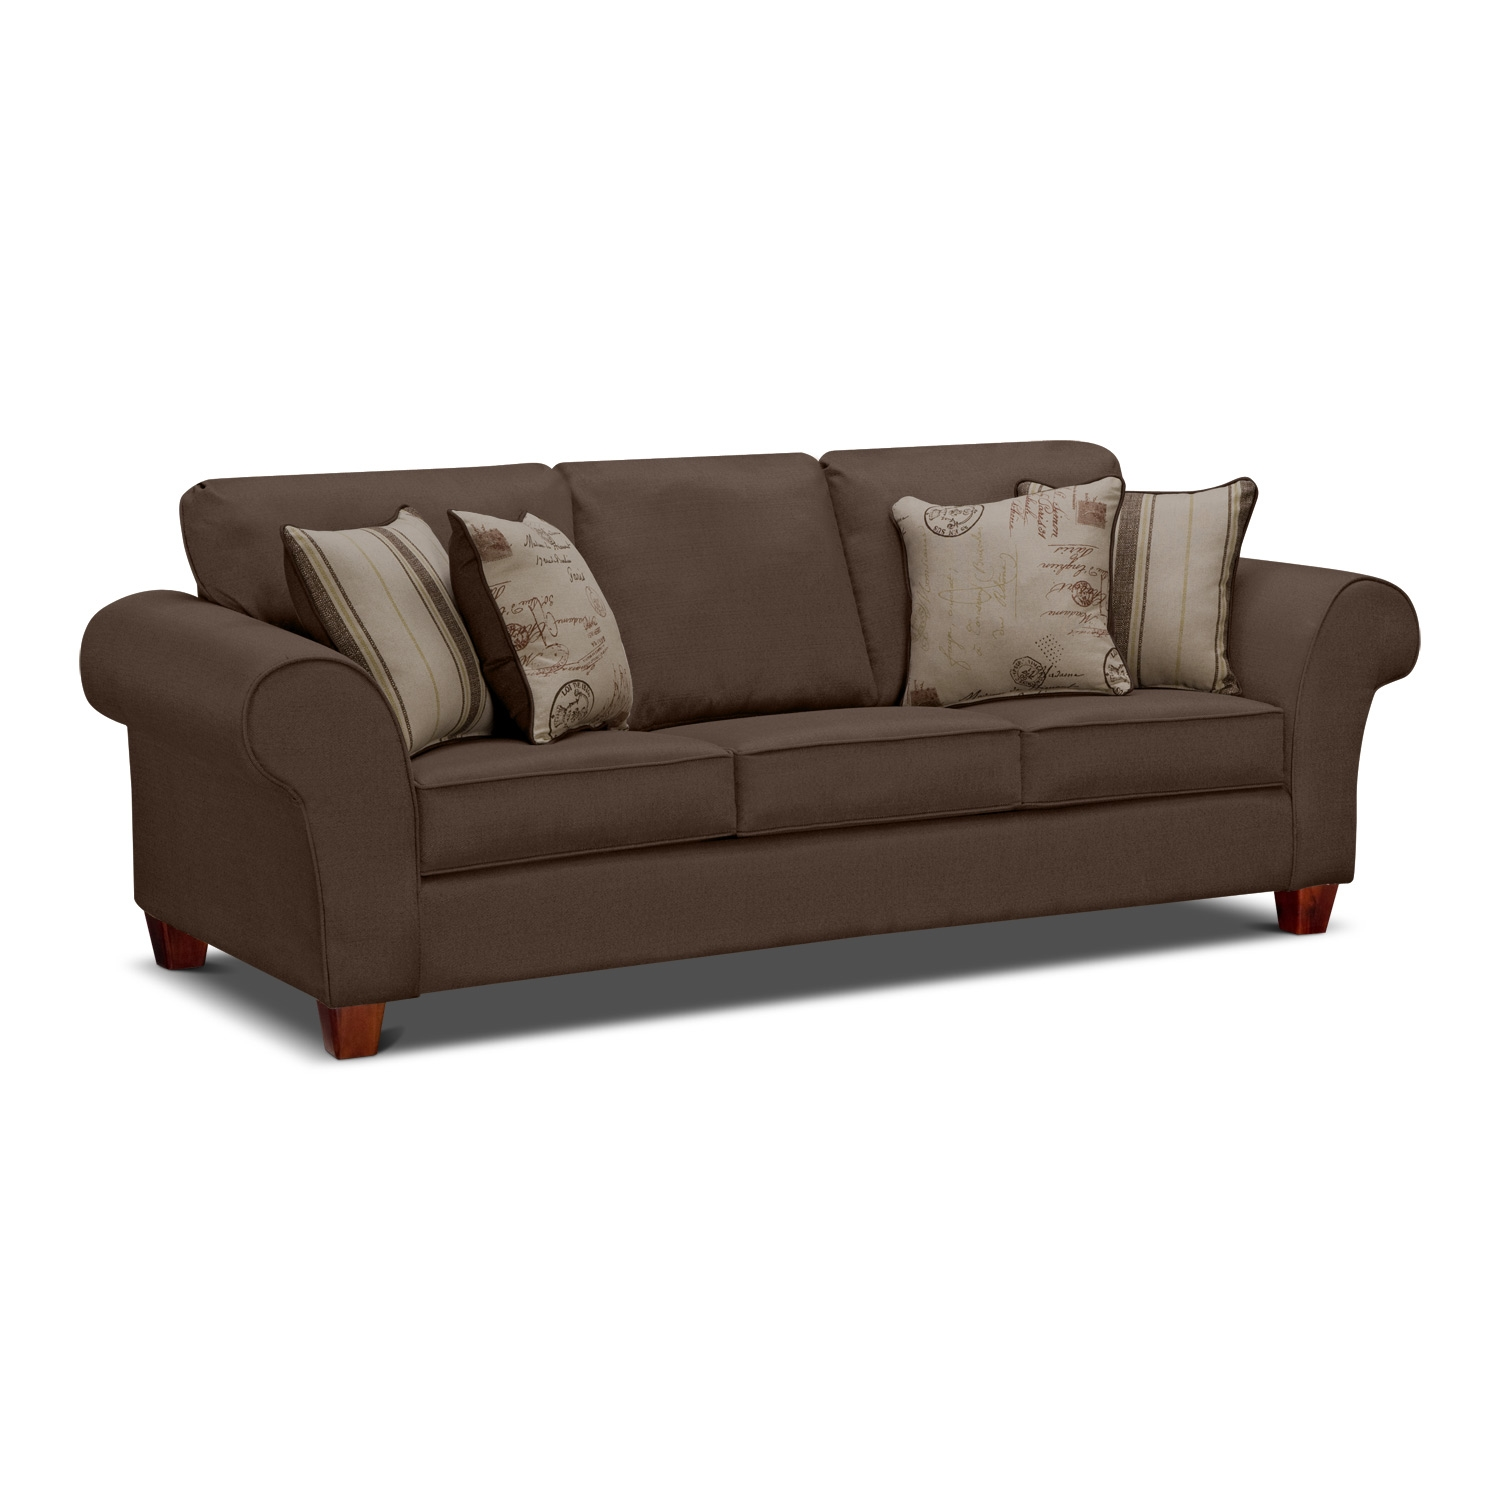 Sofas on sale ikea couch sofa ideas interior design for Sectionals for sale